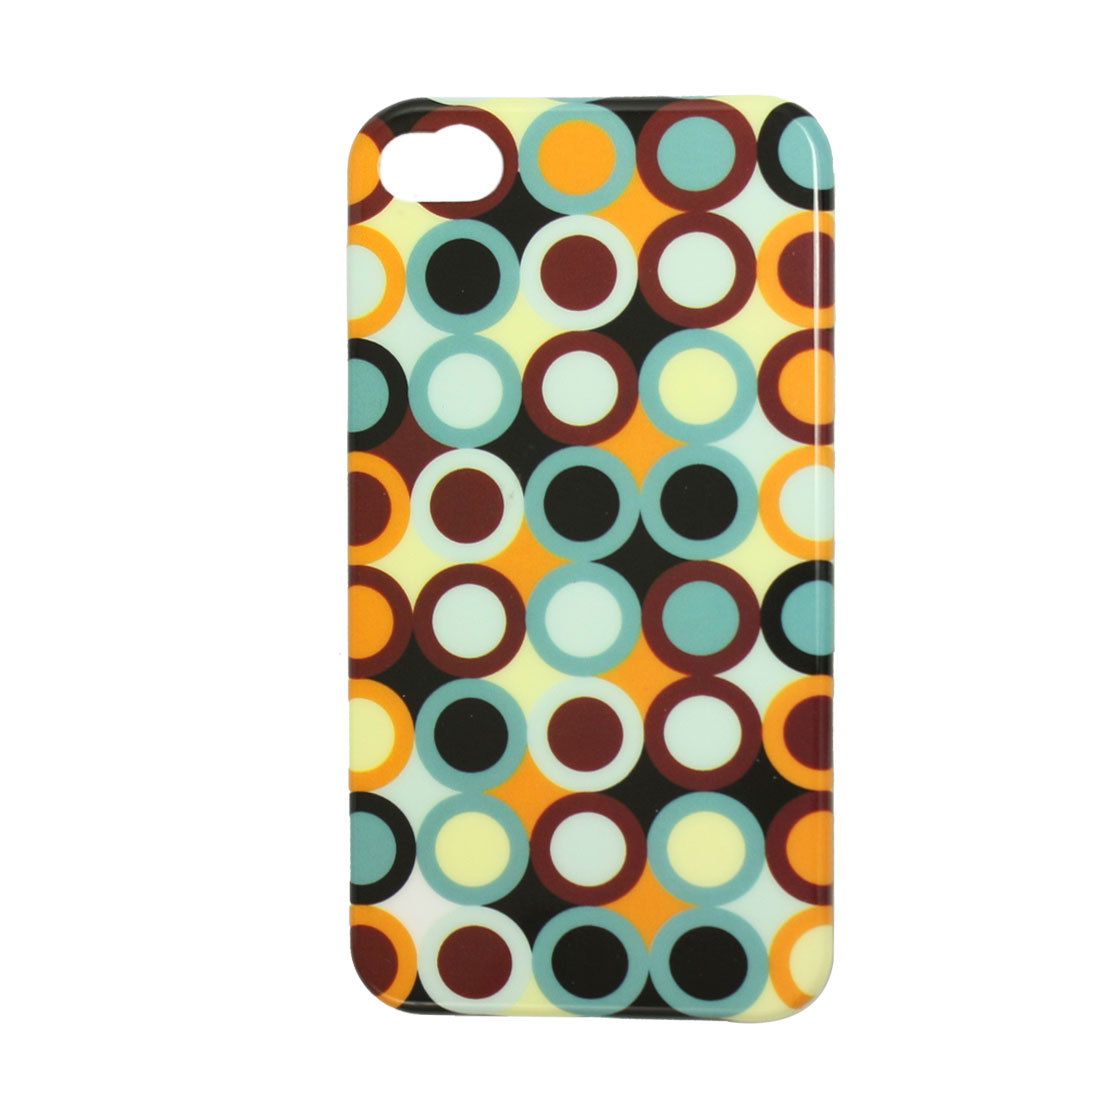 Colorful Circles Hard Plastic IMD Back Case for iPhone 4 4G